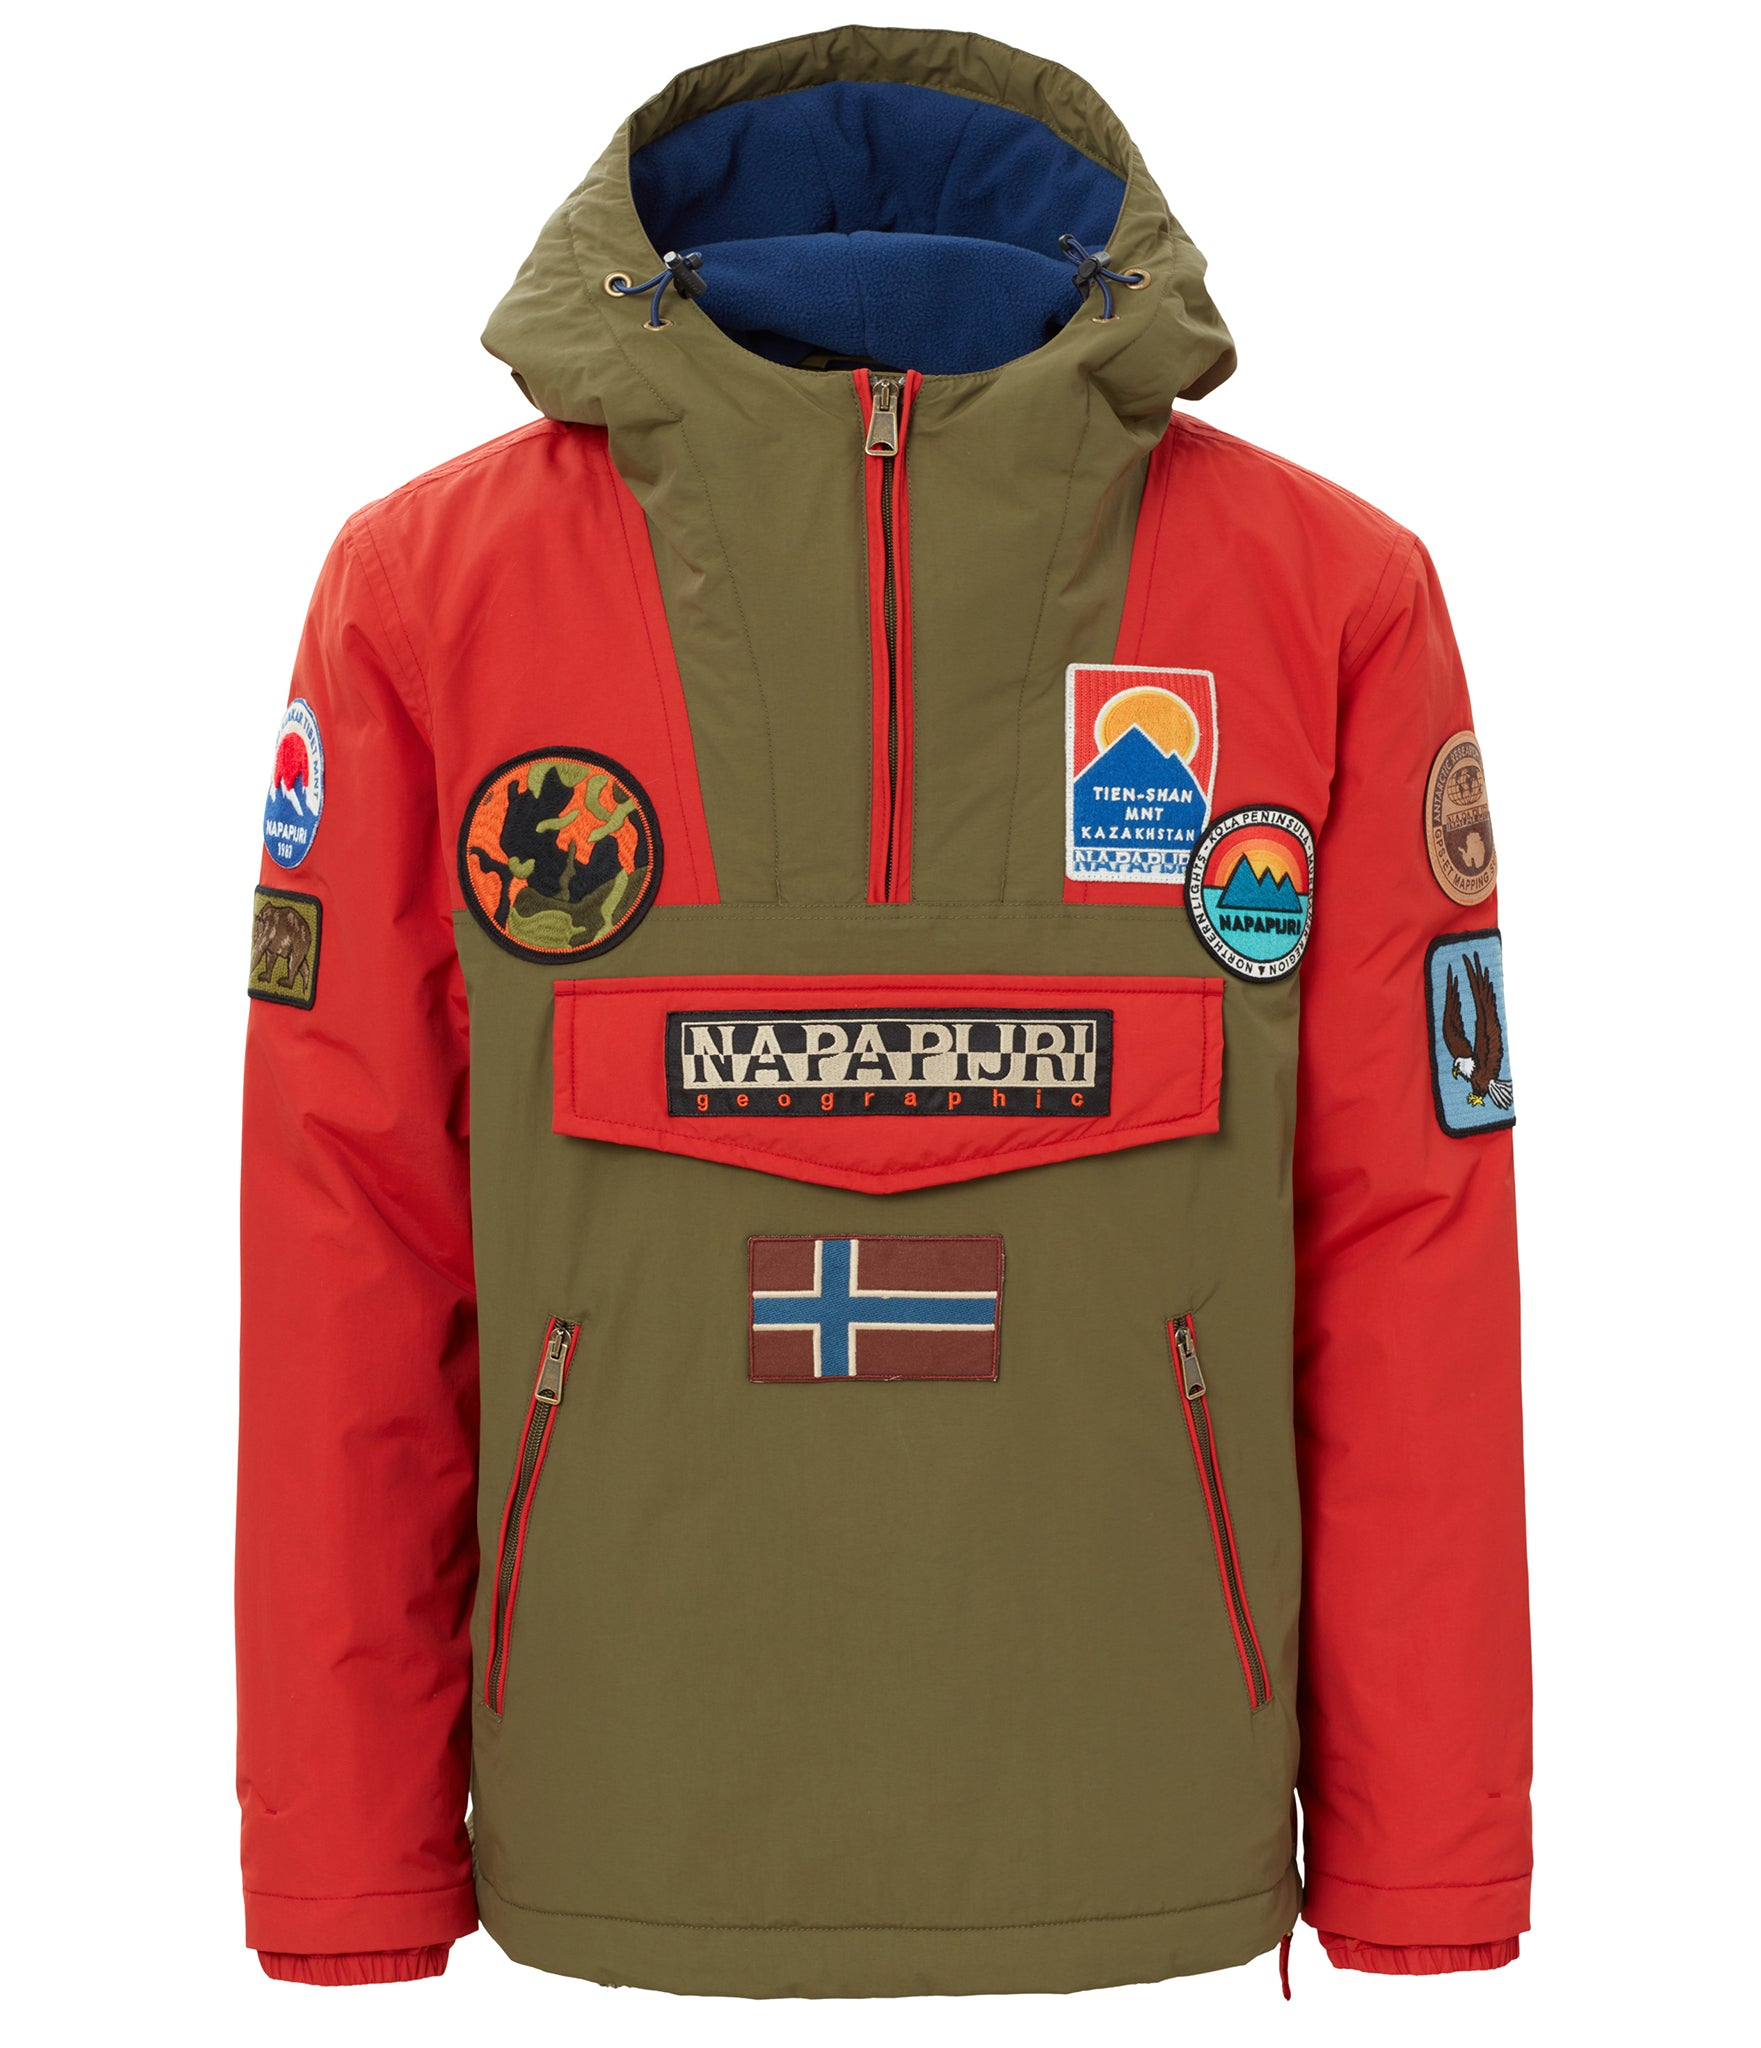 Napapijri M-Rainforest Patch Jacket FW18 - Valbruna Vail 05cbaee5c68